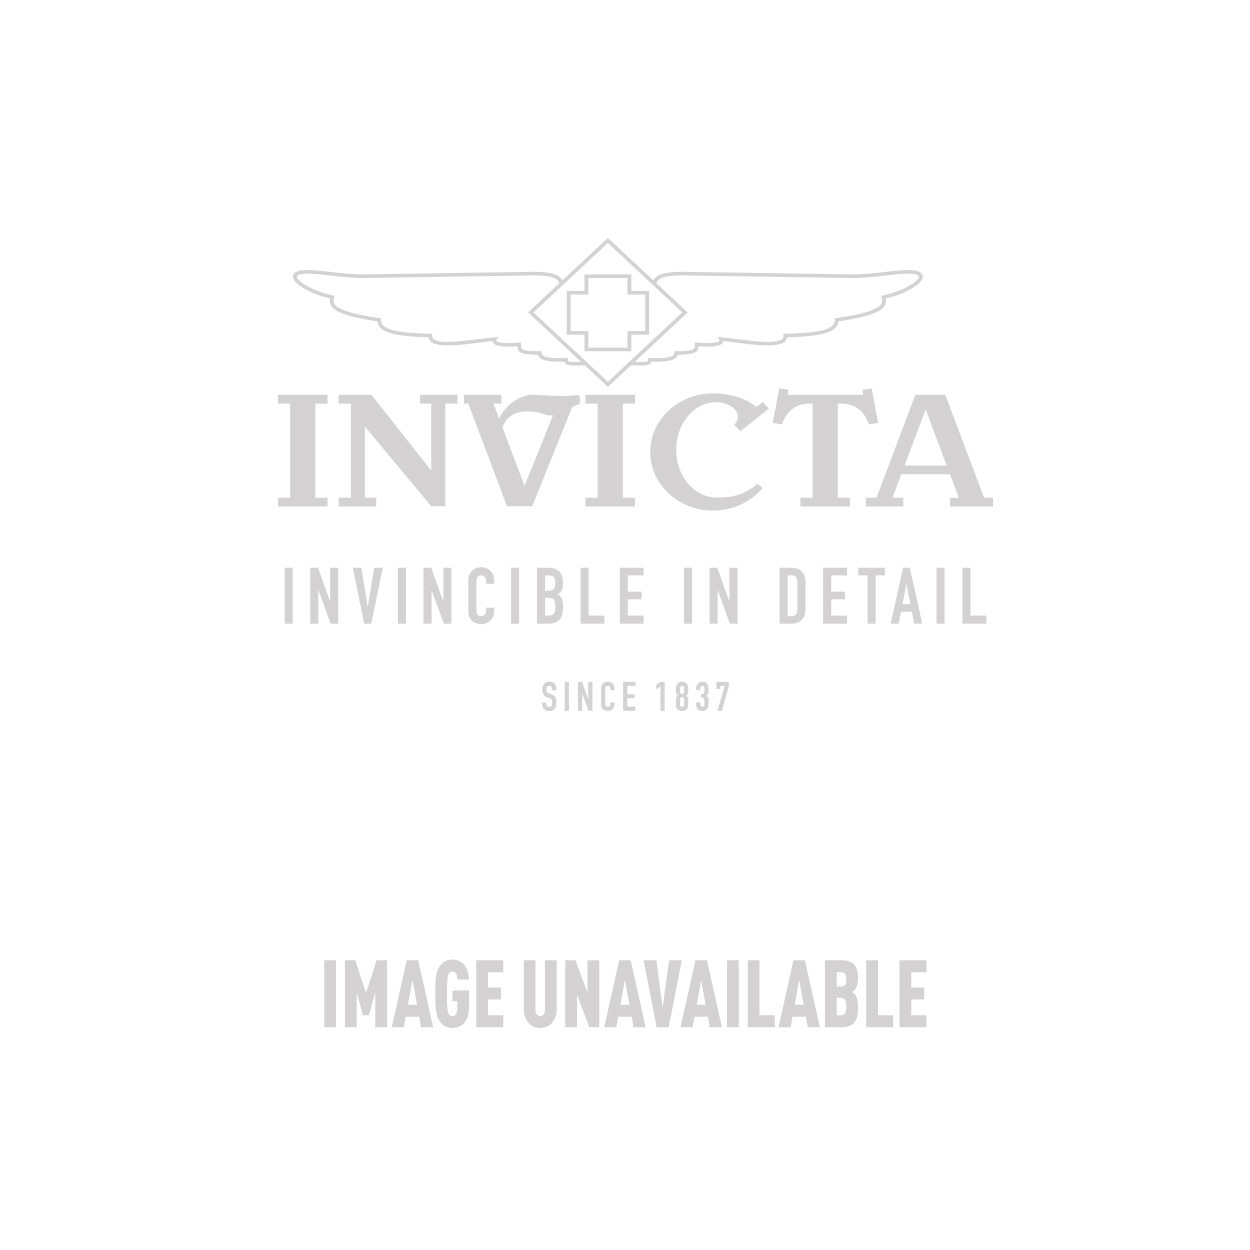 Invicta Corduba Swiss Movement Quartz Watch - Rose Gold case with Rose Gold tone Stainless Steel band - Model 14830